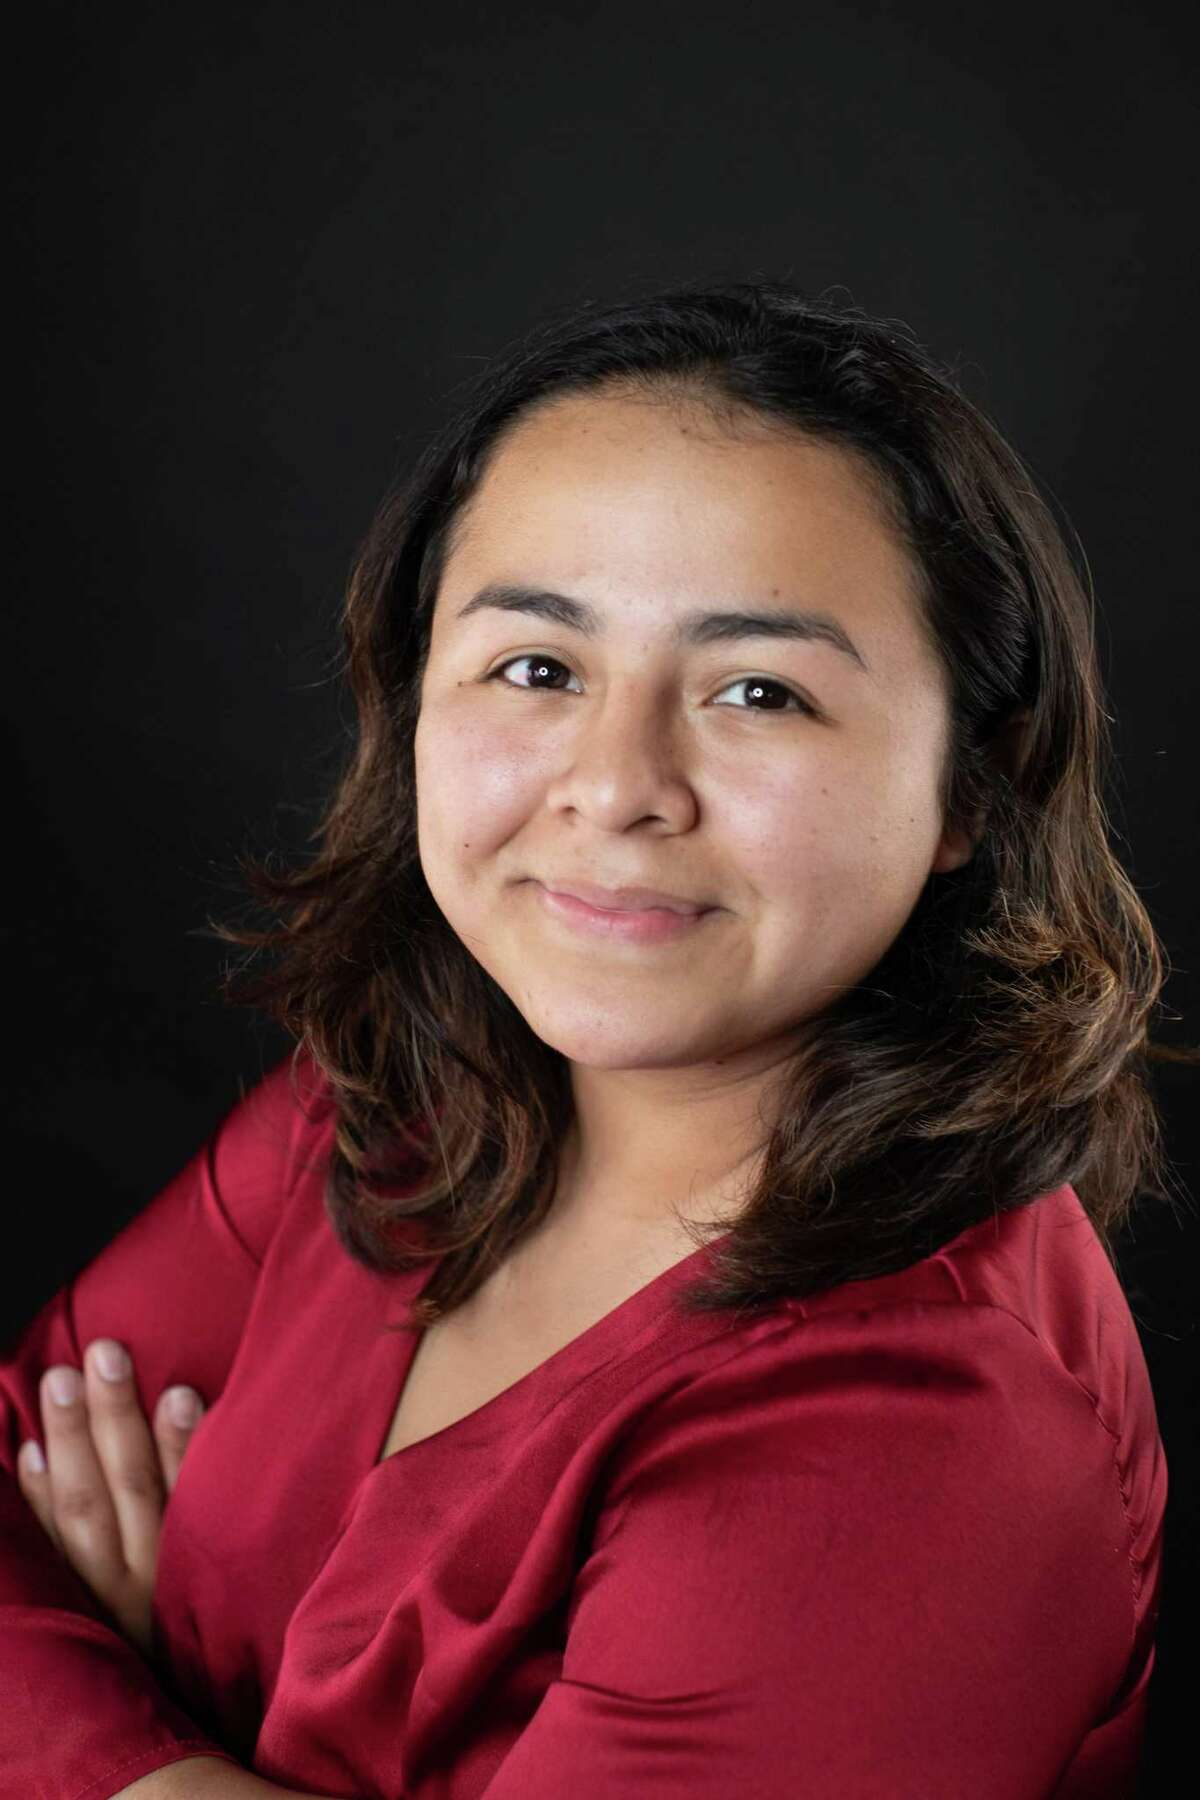 Brittany Soto, 19, is running against incumbent Tim Hennessee and Jerry Sauceda for the District 1 seat on the Comal ISD board of trustees.